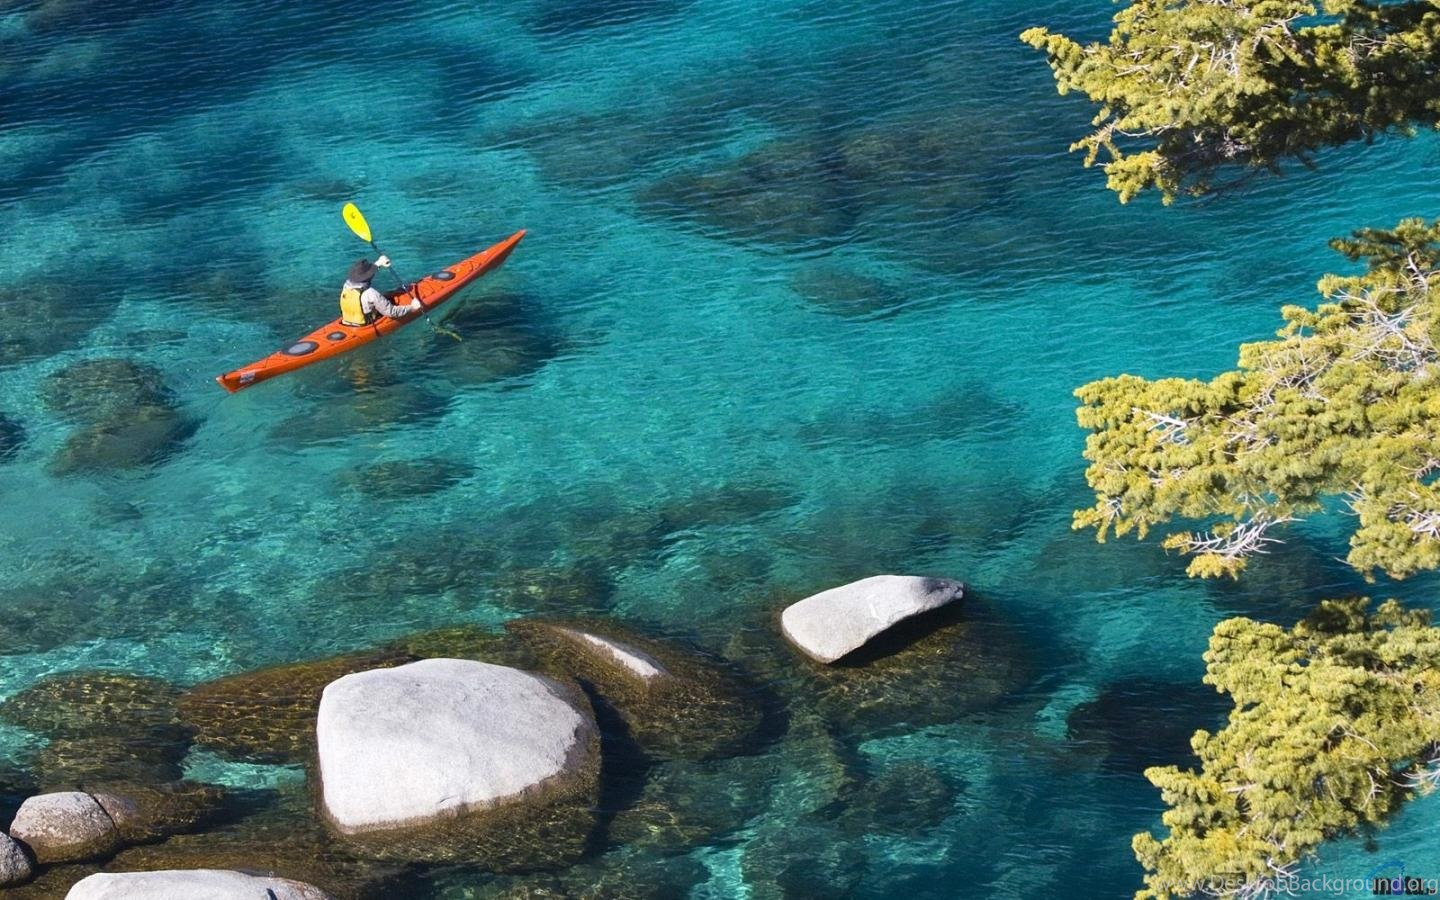 Download Wallpapers Kayaking At Lake Tahoe Nevada 1440 X 900